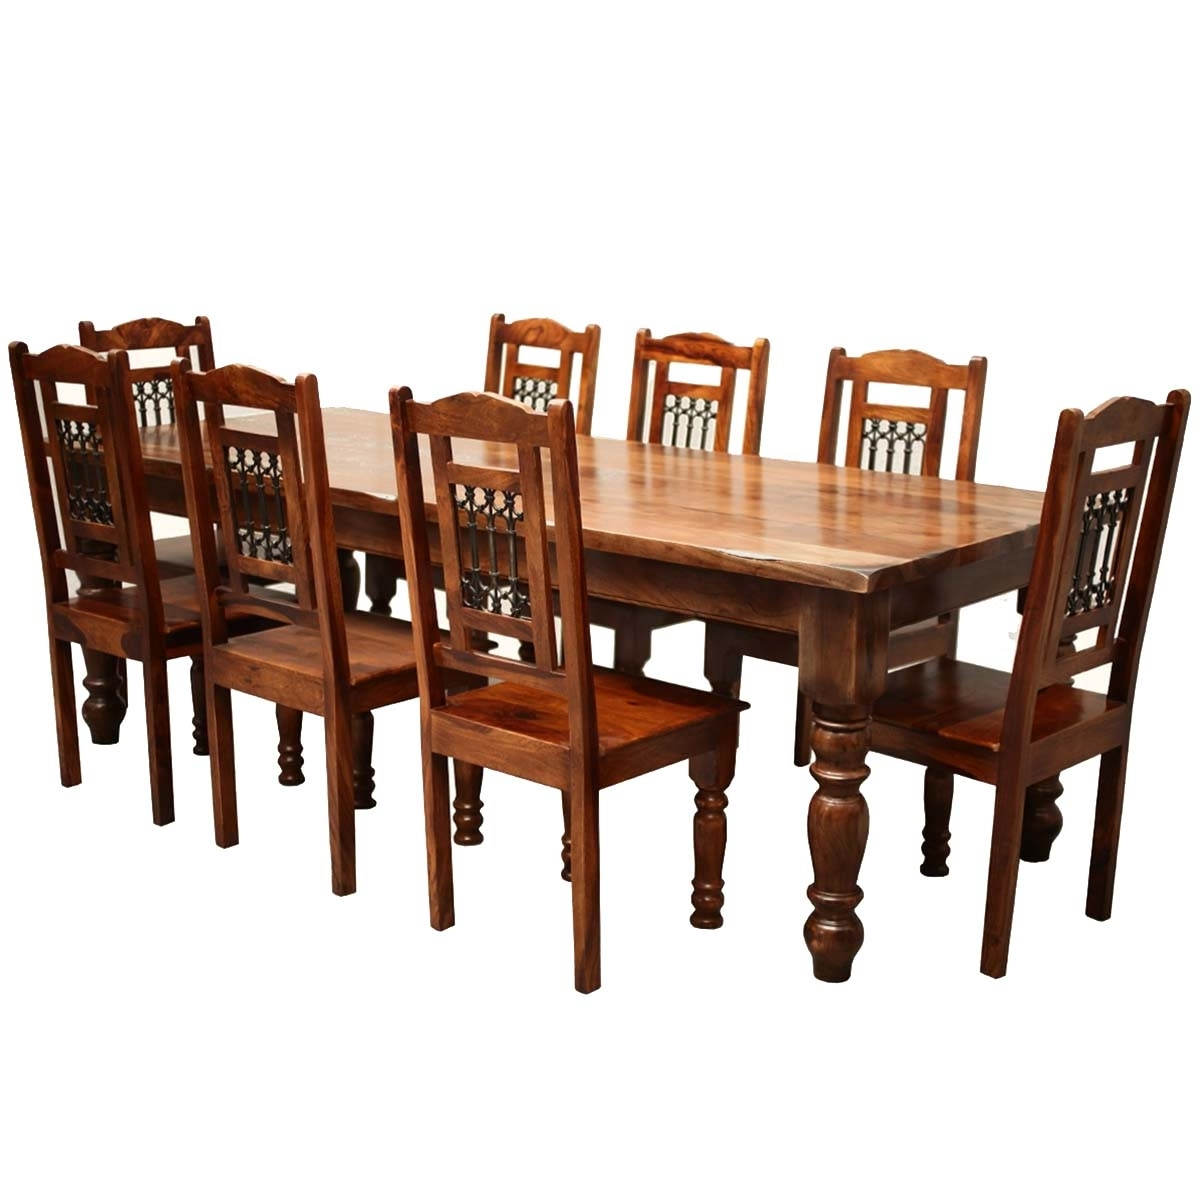 Dining Tables 8 Chairs Set In Most Popular Rustic Furniture Solid Wood Large Dining Table & 8 Chair Set (View 6 of 25)